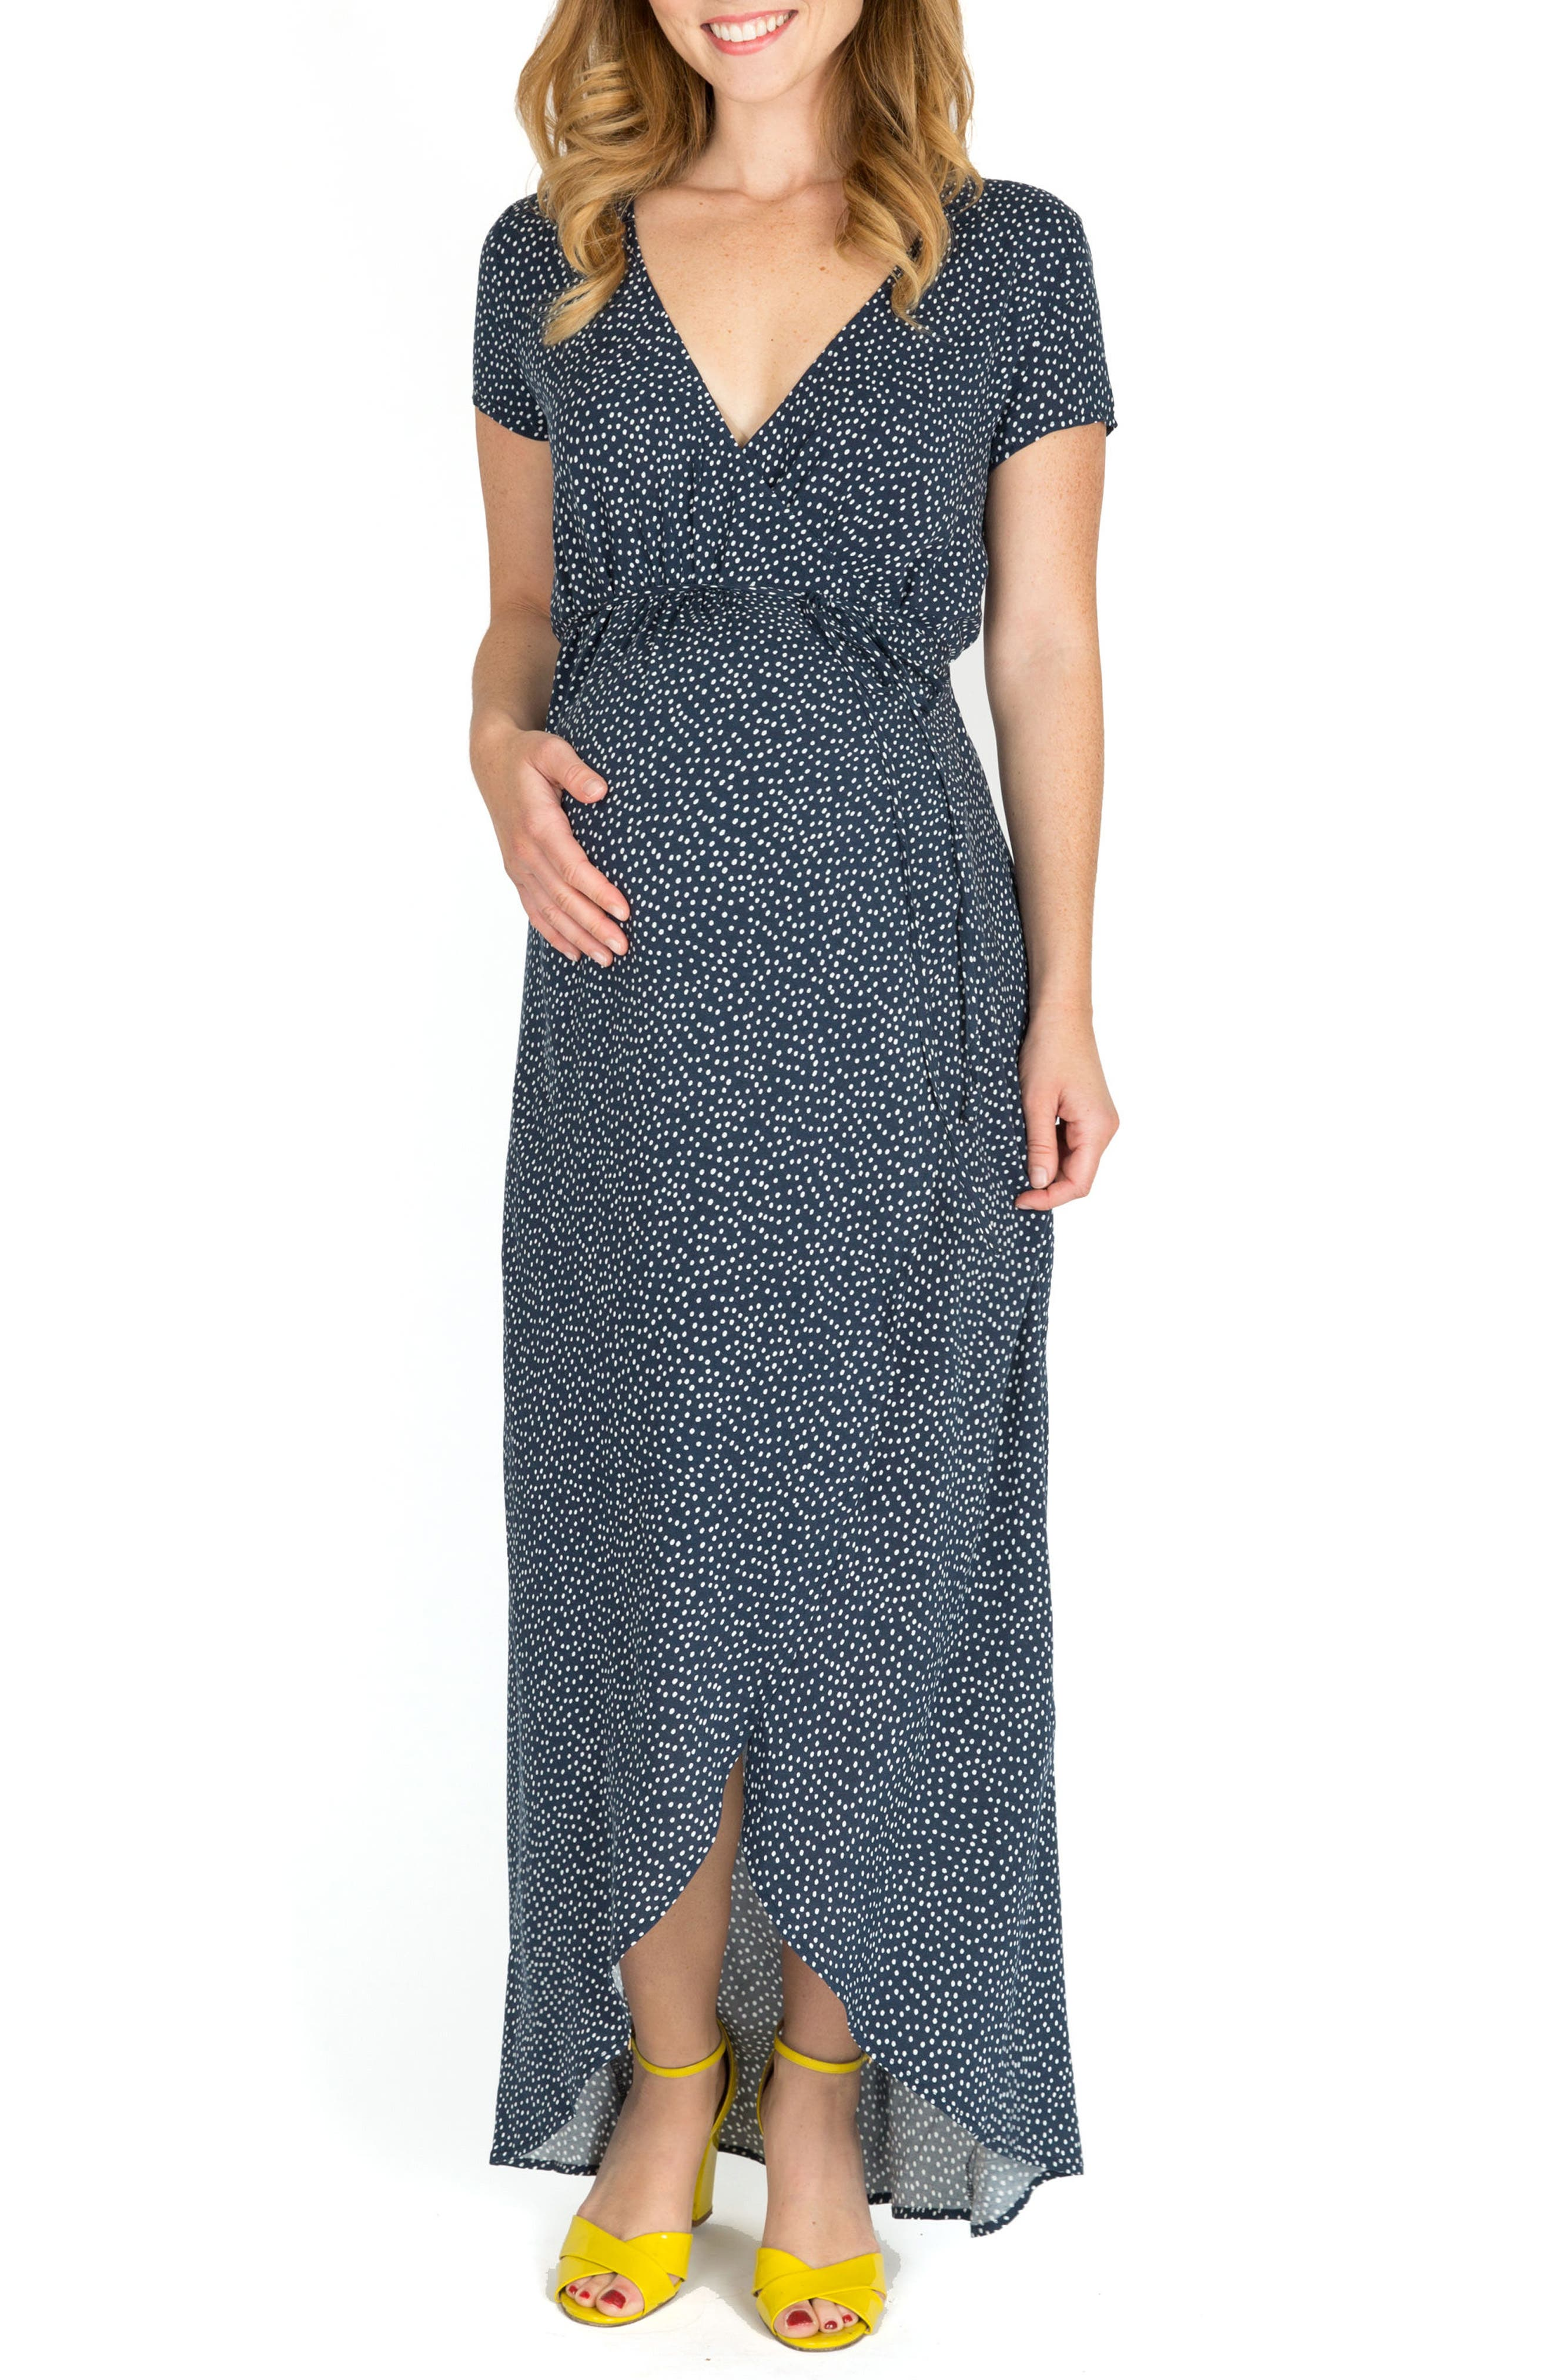 Delilah Maternity/Nursing Wrap Maxi Dress,                             Main thumbnail 1, color,                             NAVY DOT